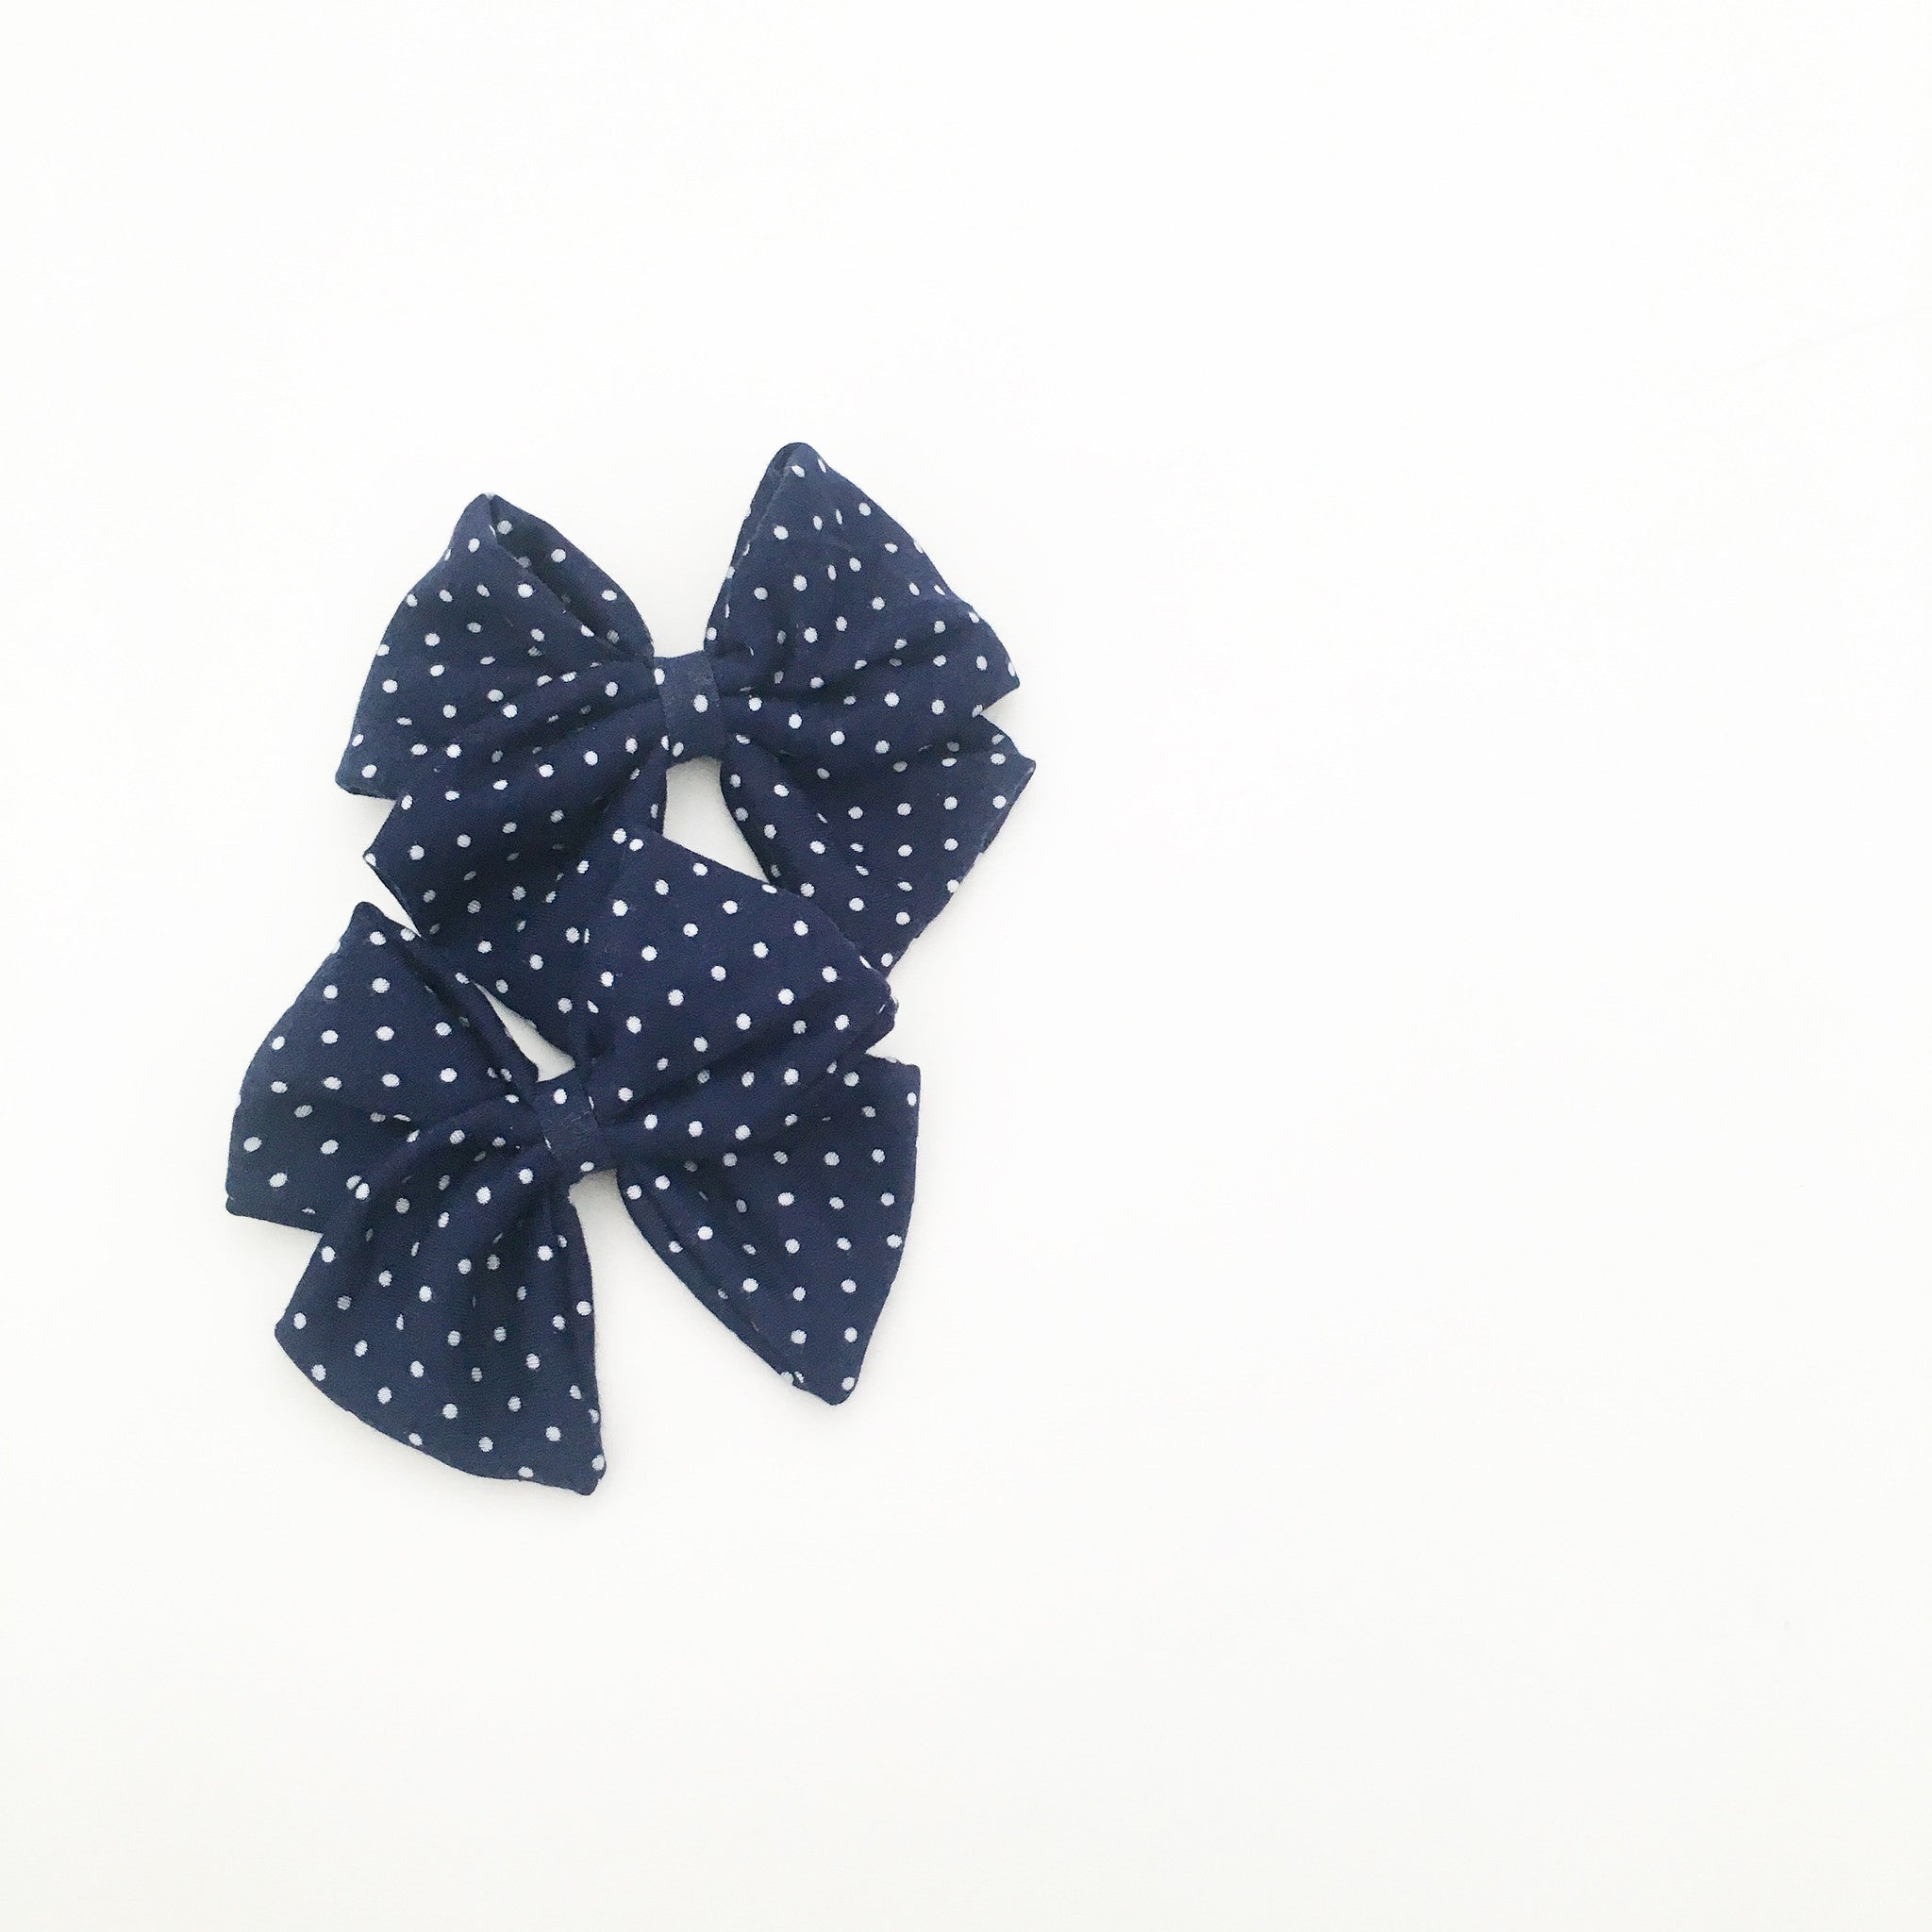 the blair - navy polka dot